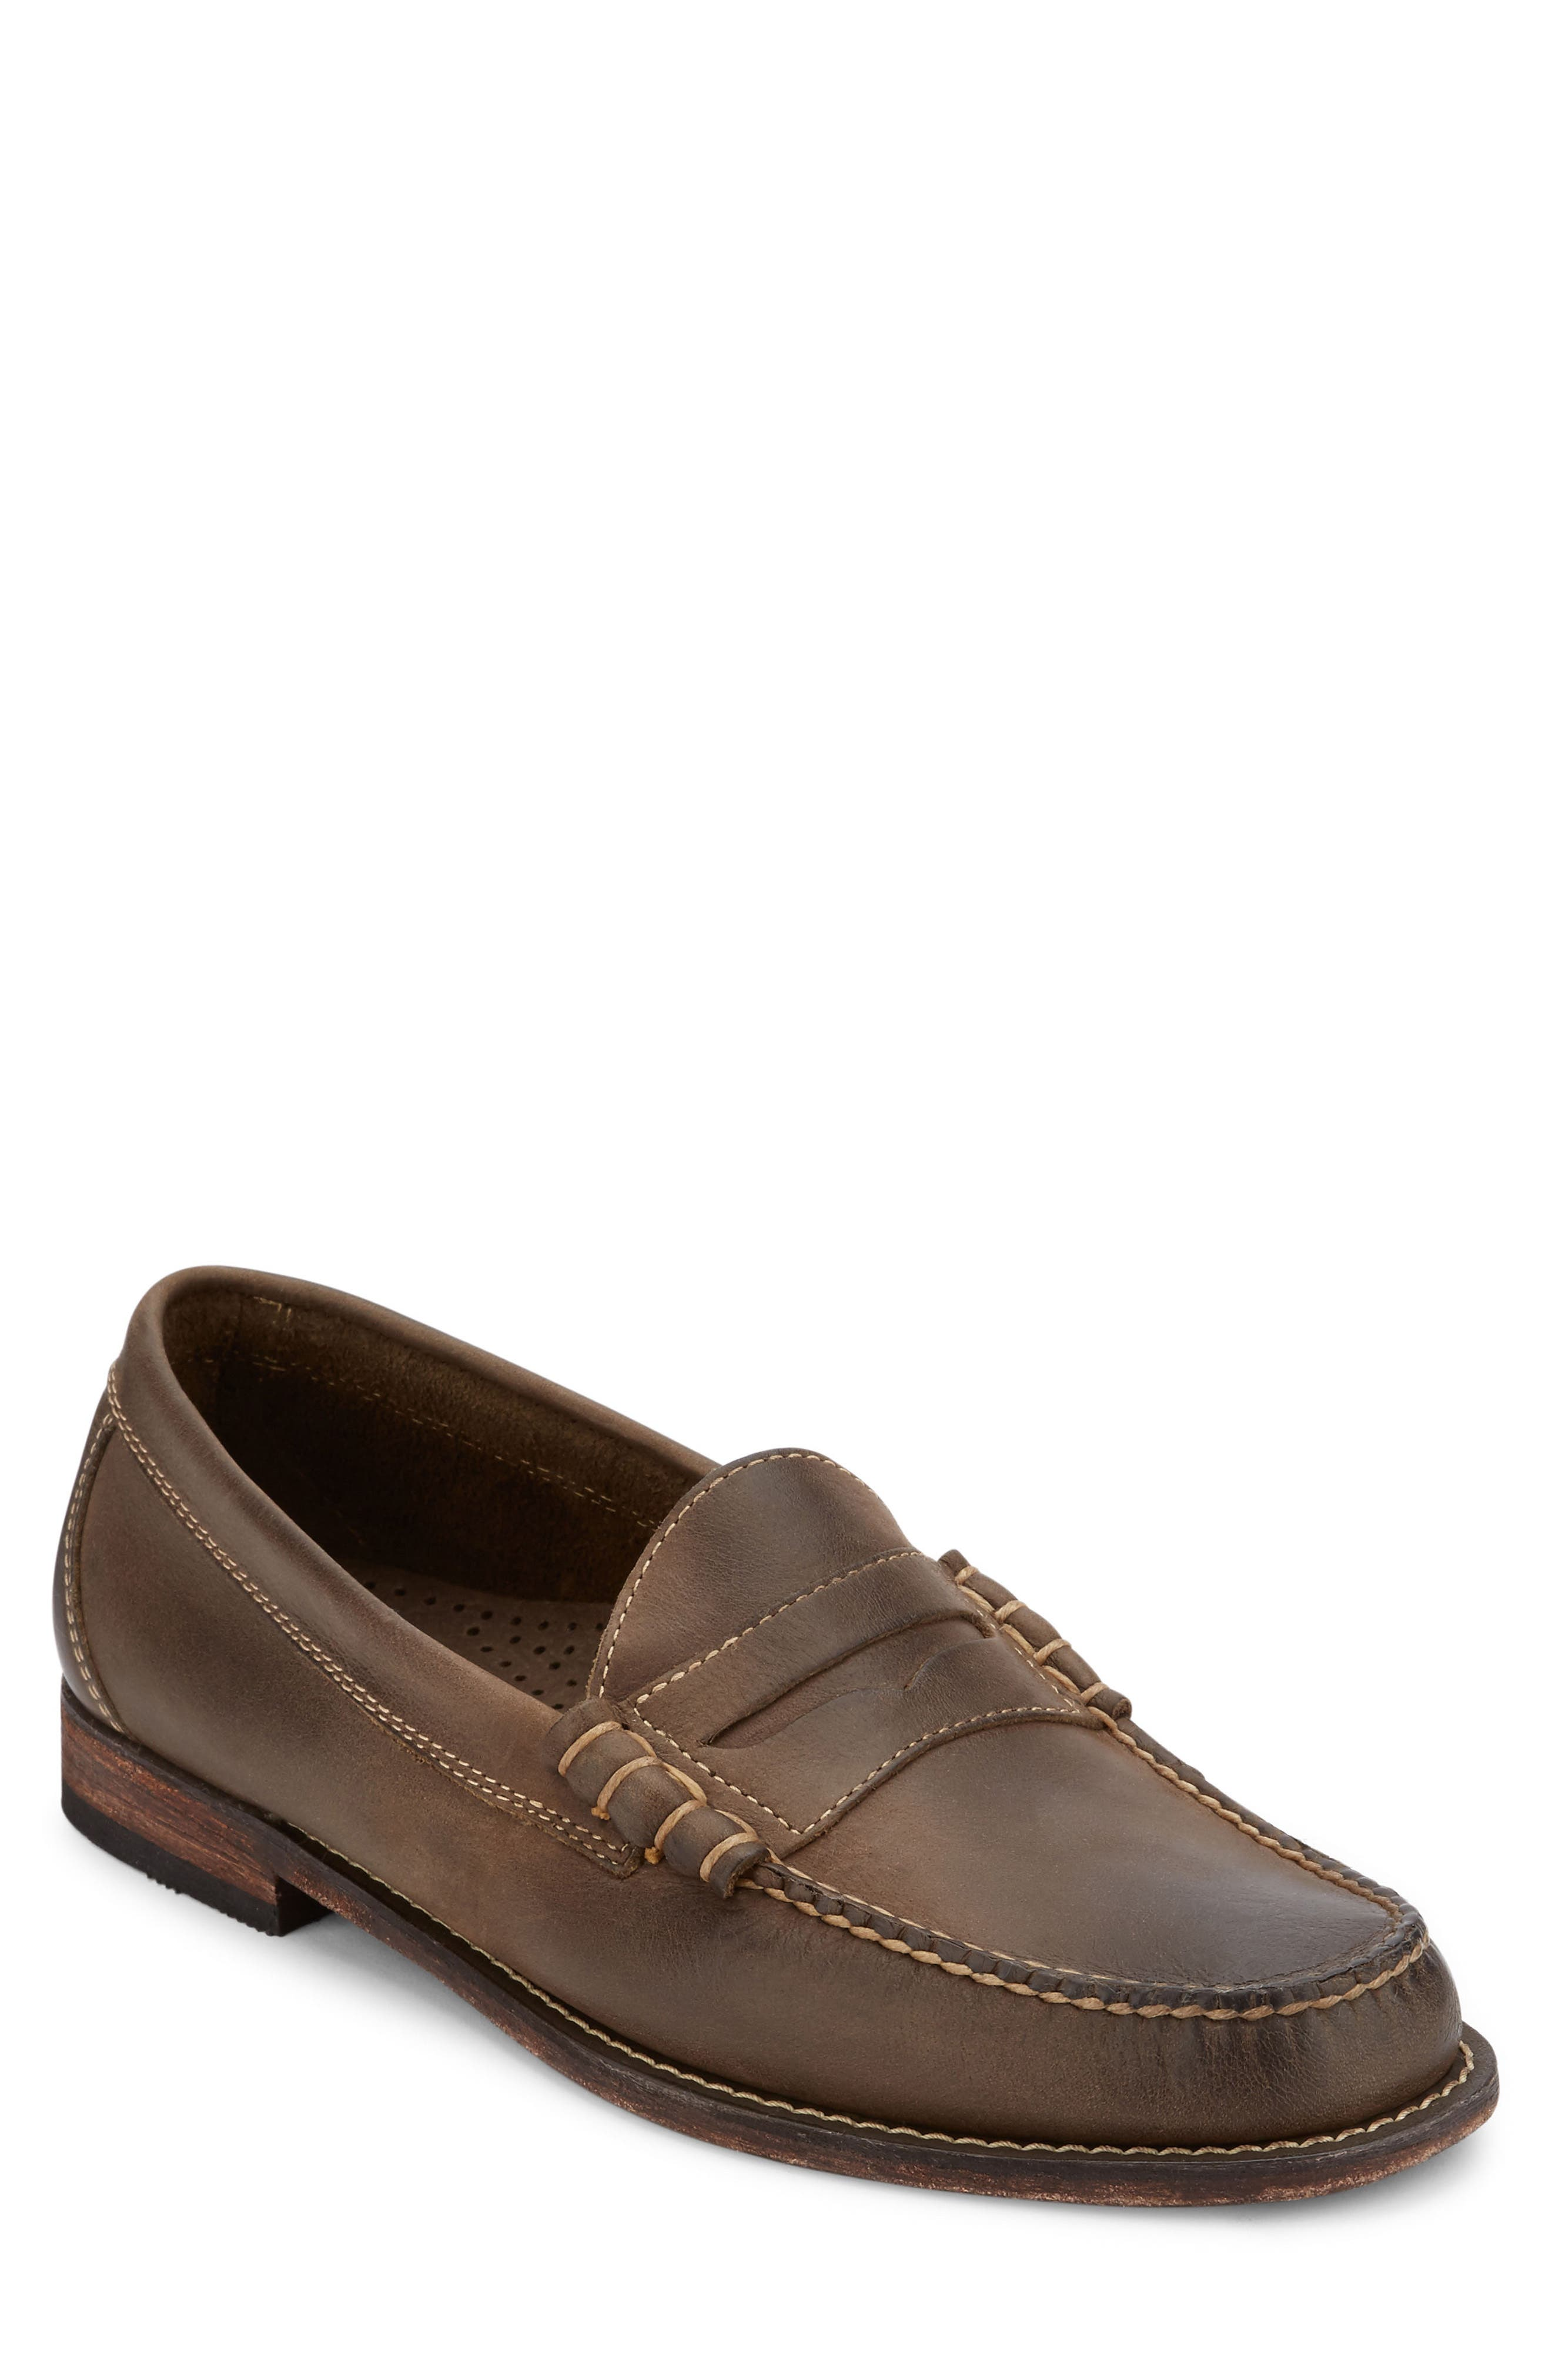 Hayden Penny Loafer,                             Main thumbnail 2, color,